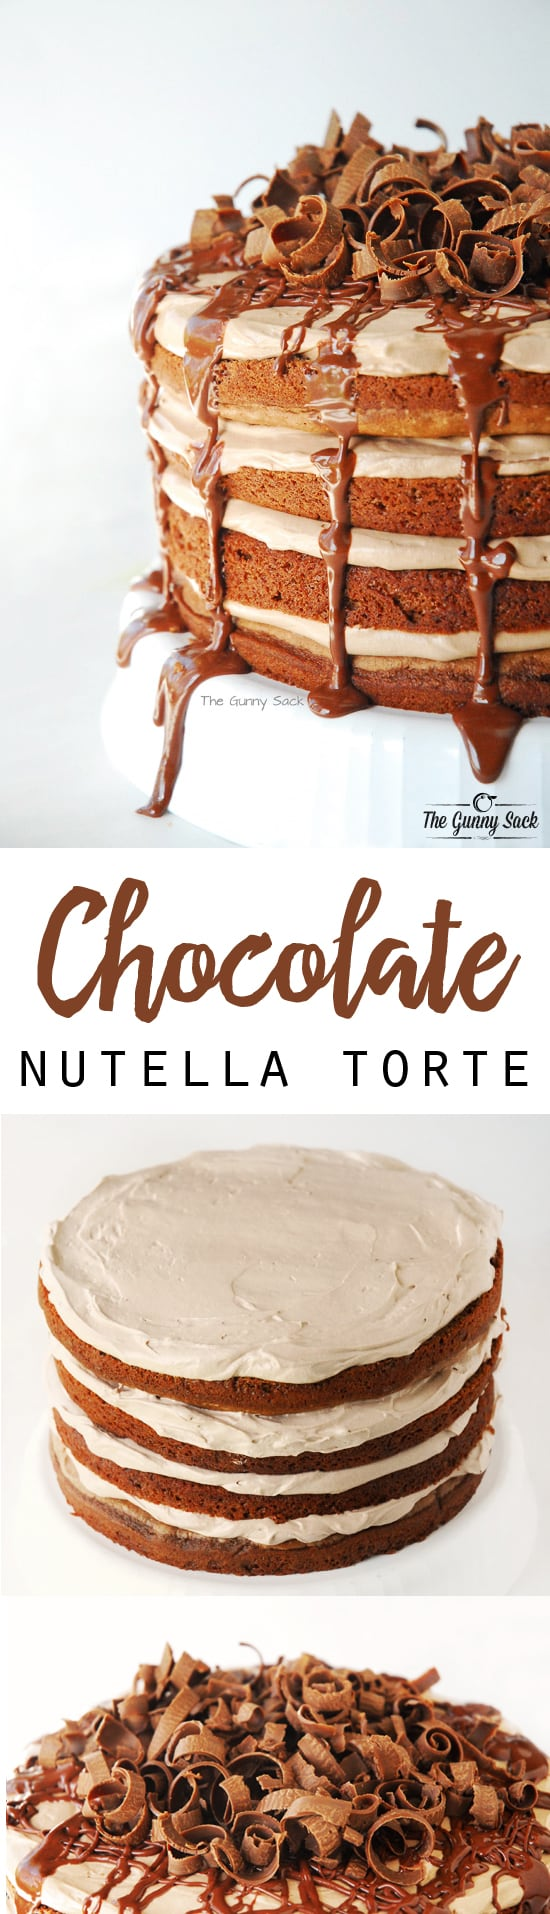 Chocolate Nutella Torte Recipe